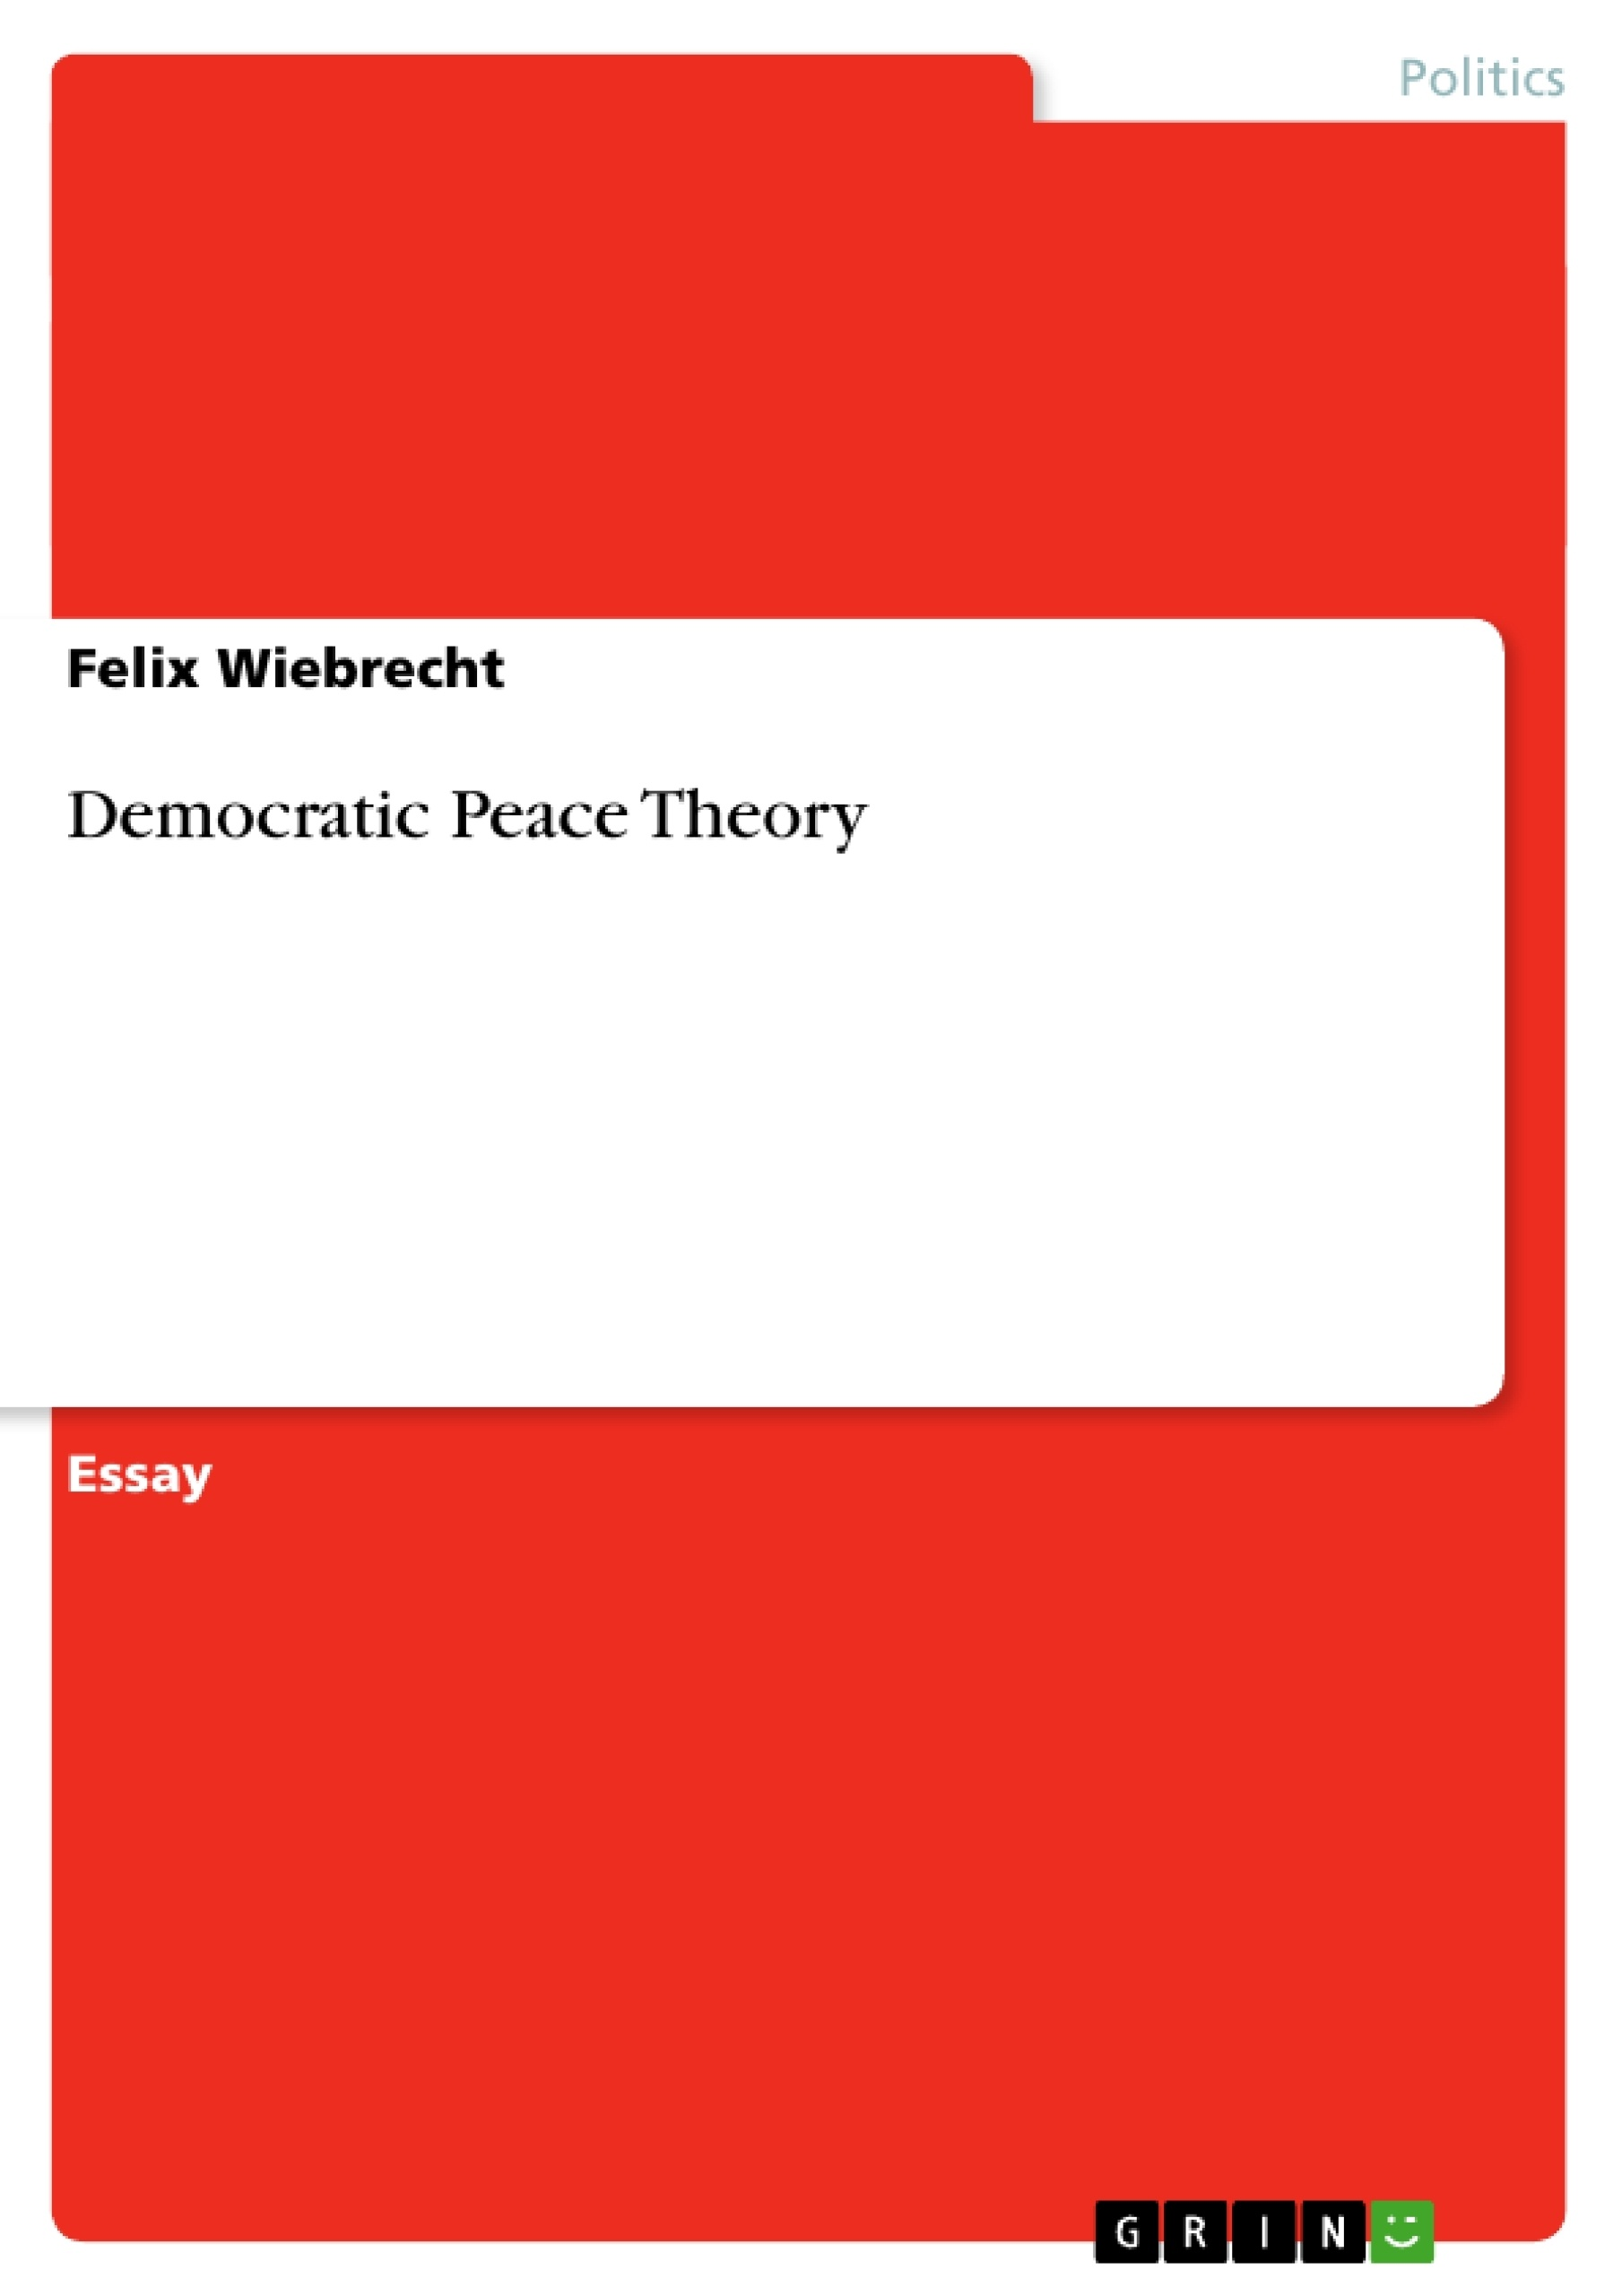 """democracy sacred term essay Essay on """"democracy implies tolerance of dissent"""" complete essay for class 10, class 12 and graduation and other classes."""